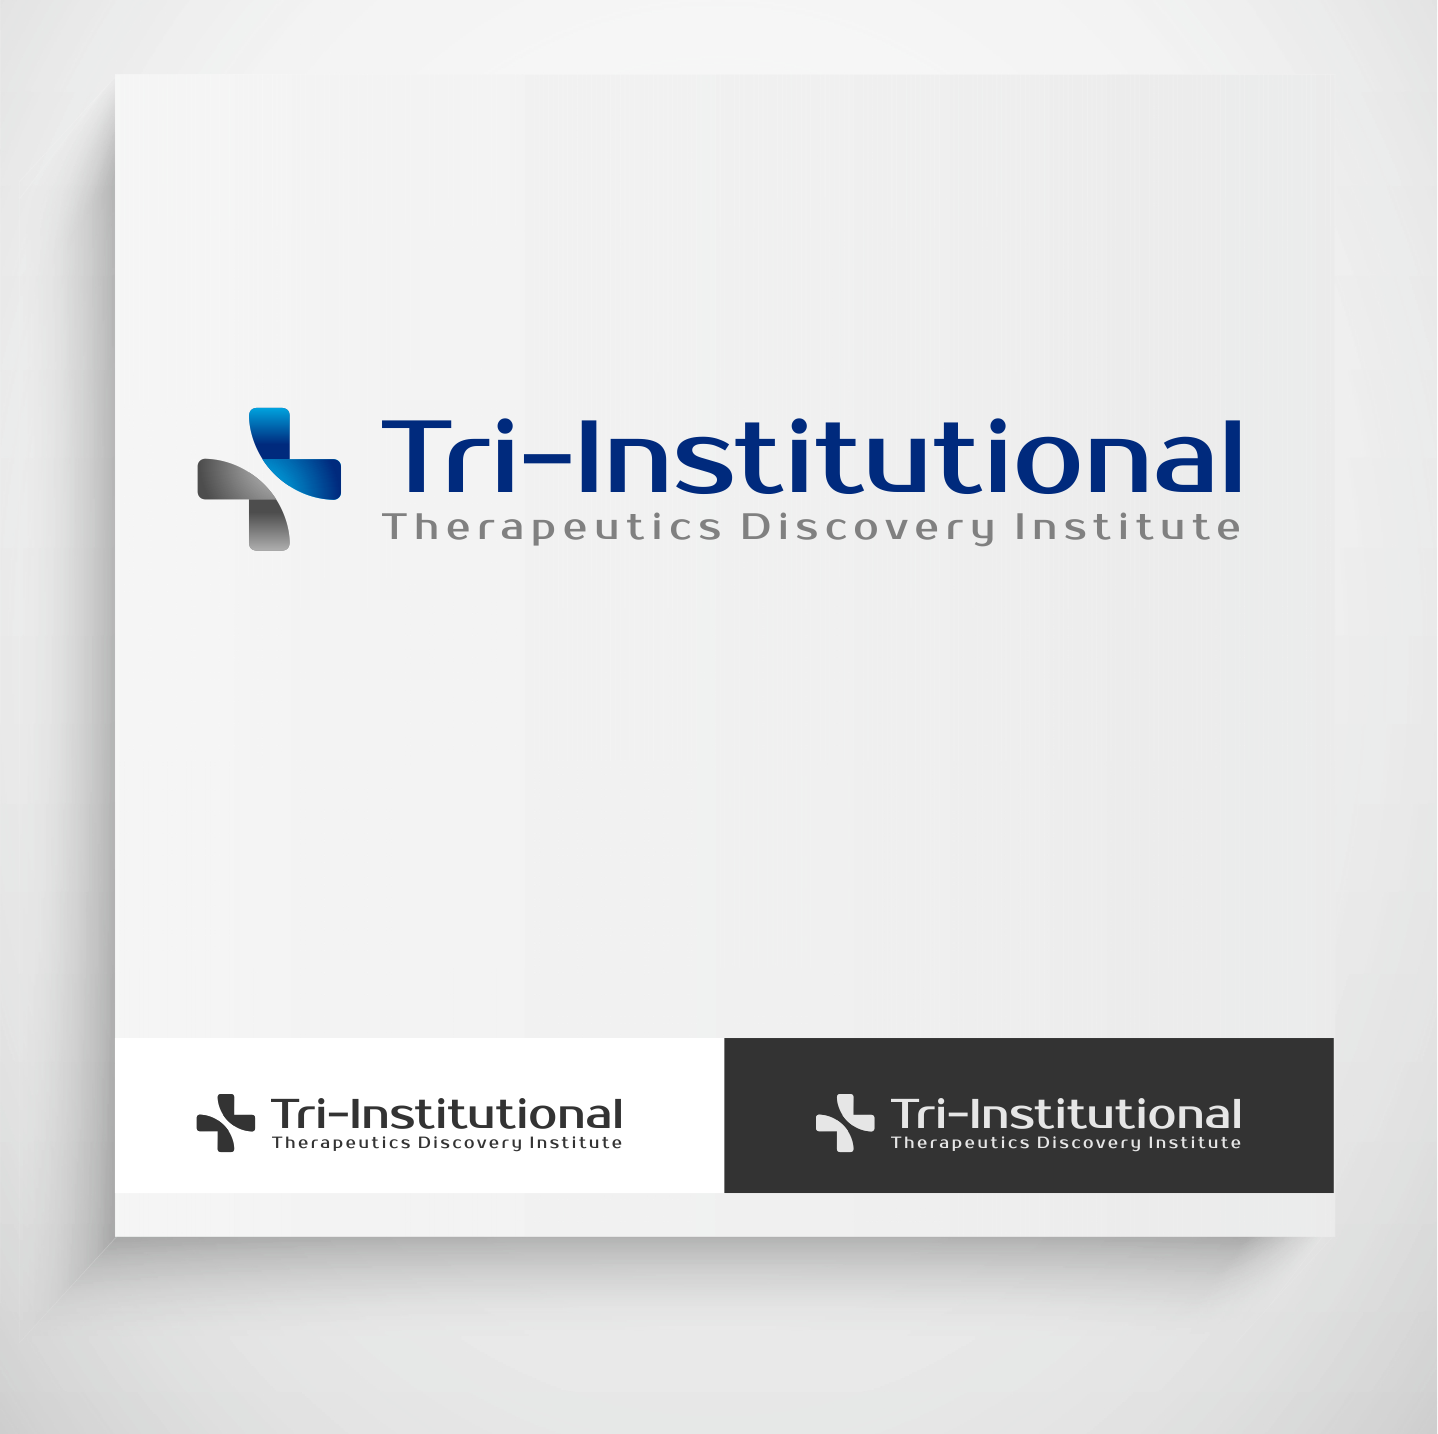 Logo Design by Krzysztof Mokanek - Entry No. 77 in the Logo Design Contest Inspiring Logo Design for Tri-Institutional Therapeutics Discovery Institute.